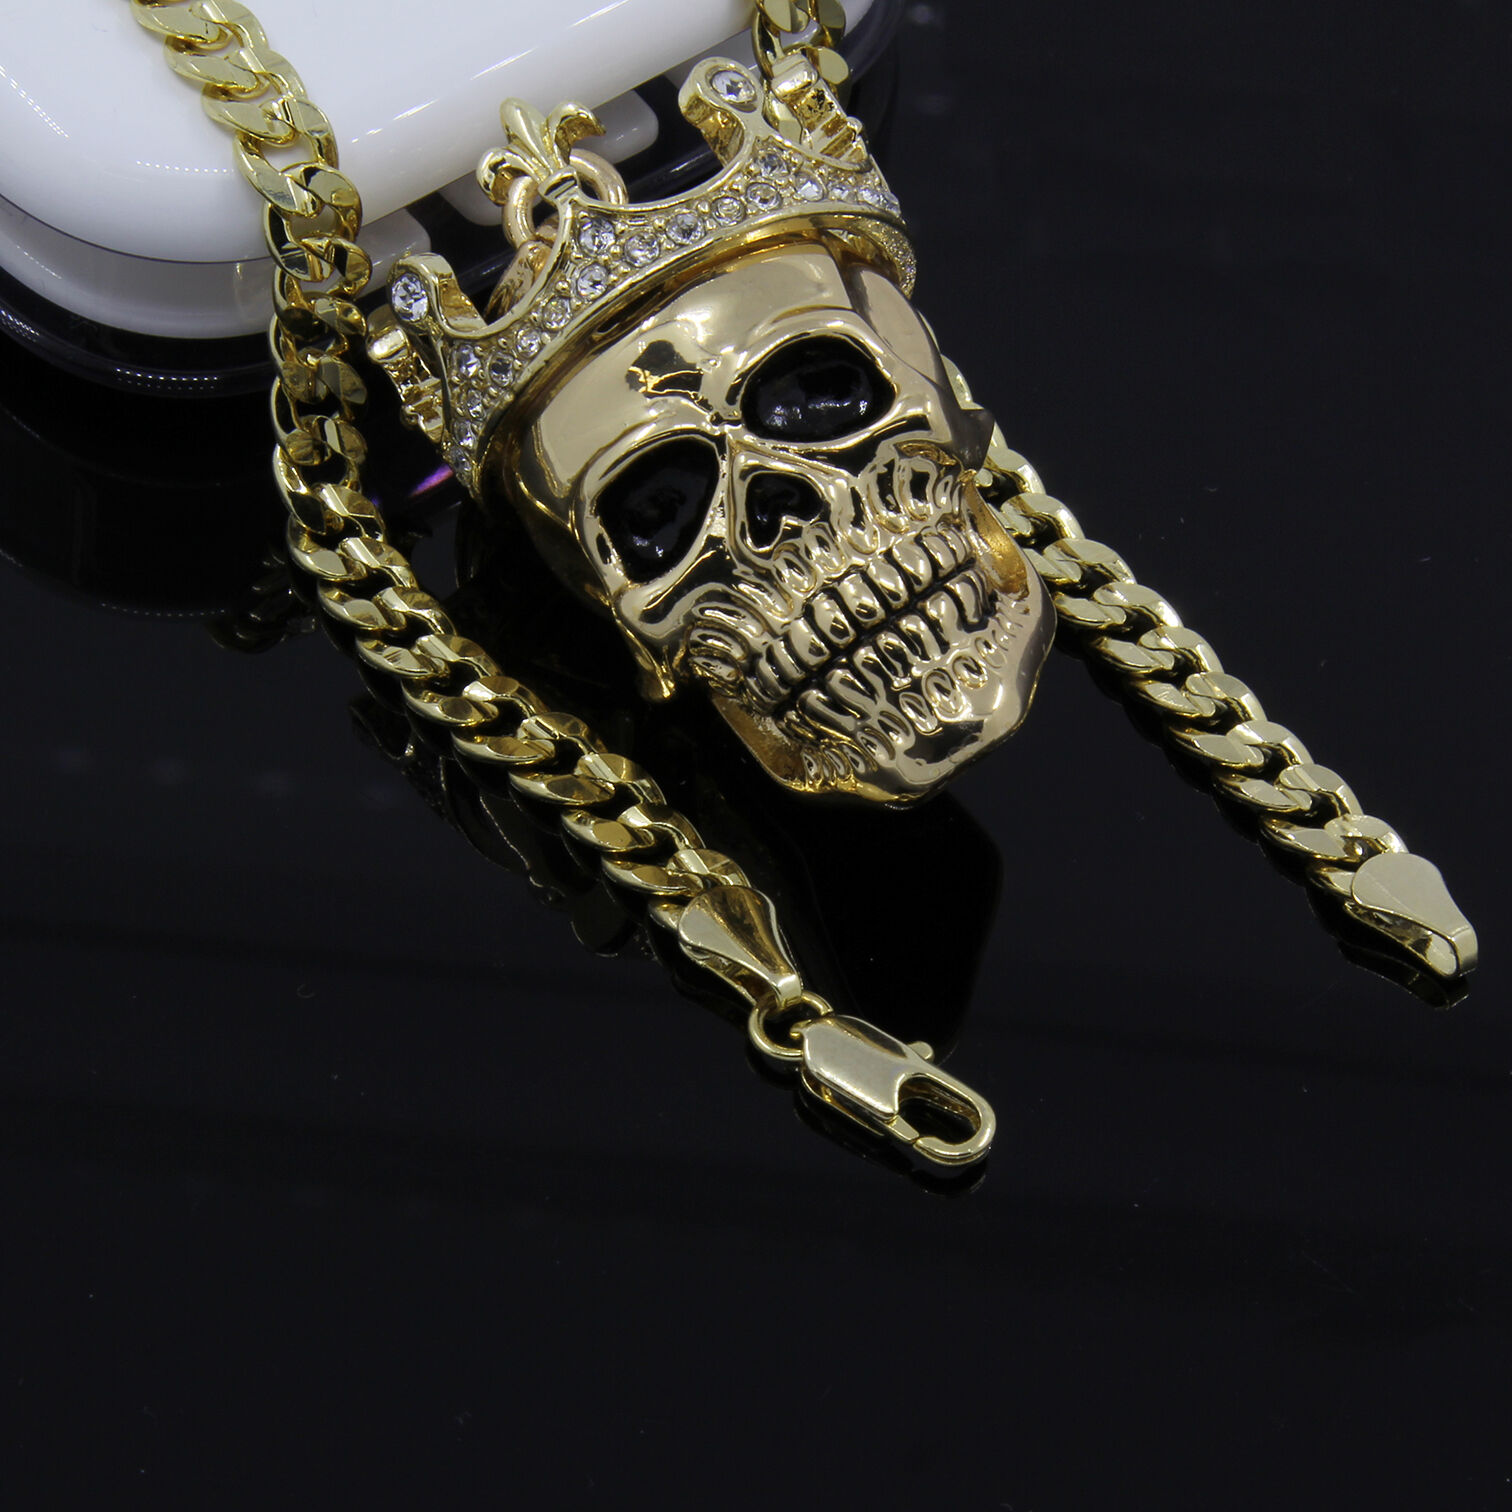 anhaenger com with totenkopf gb halskette costume necklace totenschaedel accessories jewelry skull horror rhinestone shop pendant mit